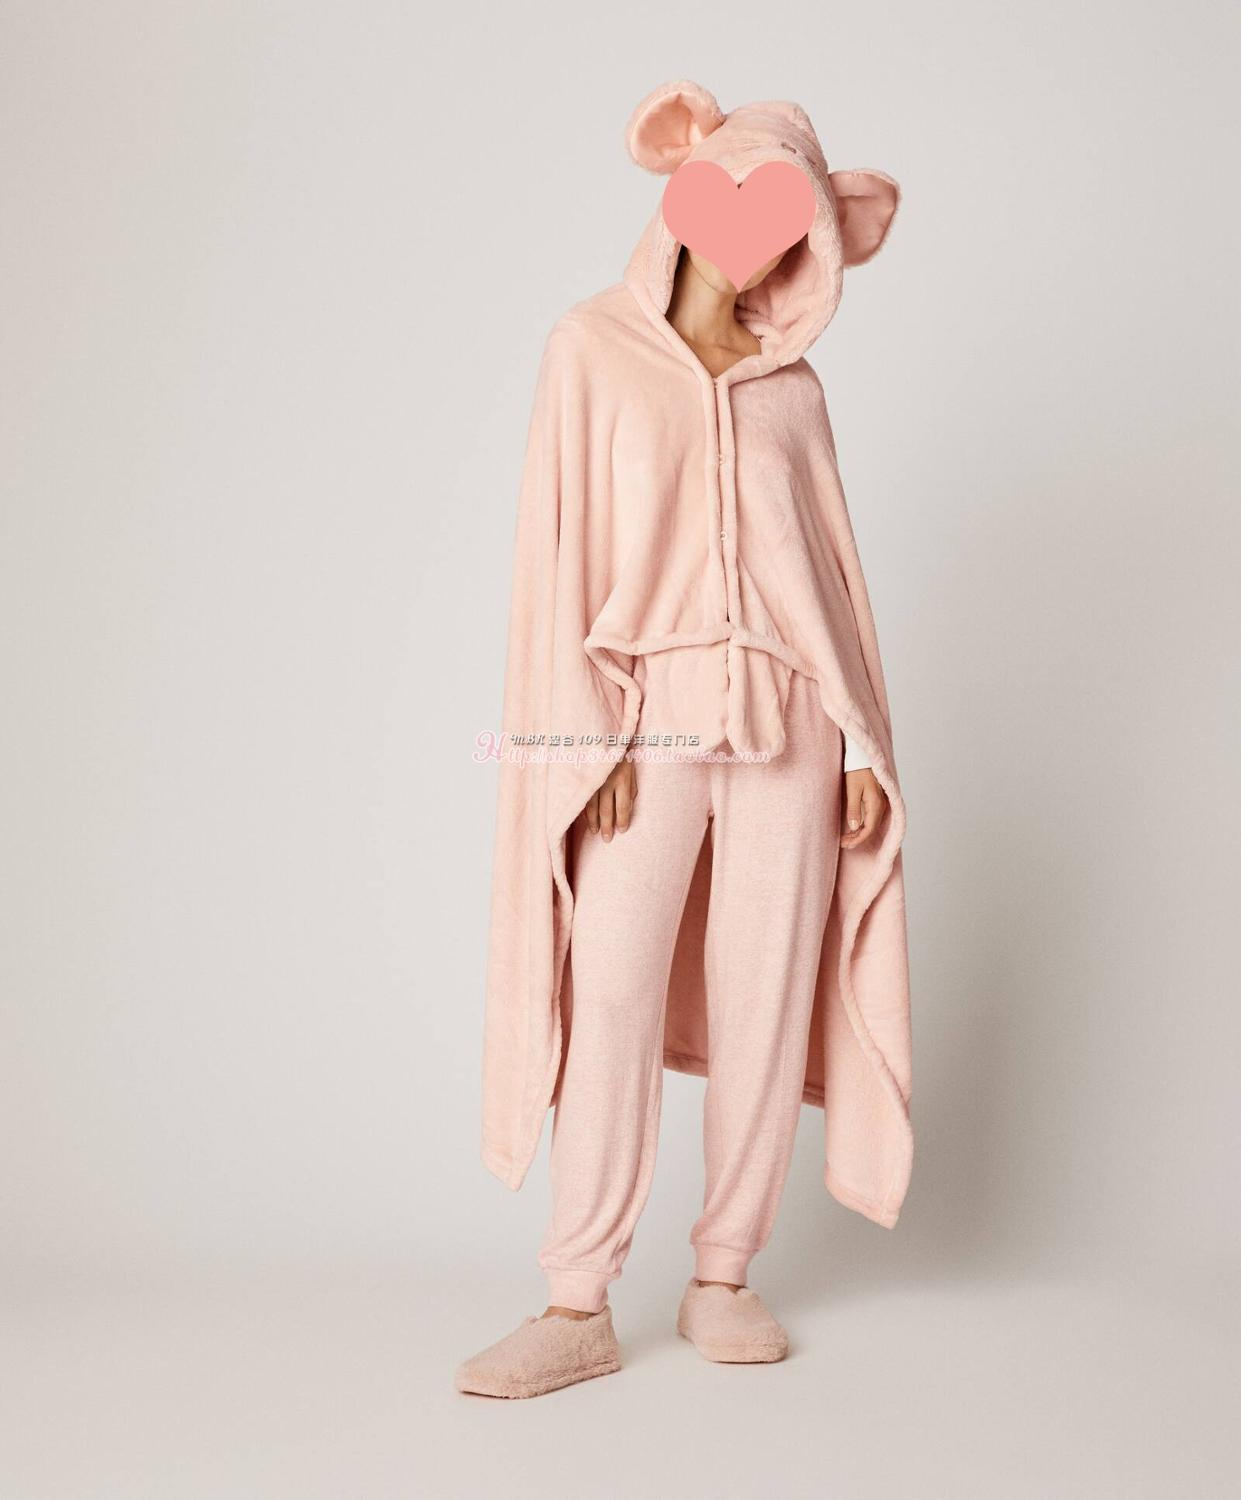 2020 Spain Oysho Pink  Mouse  Cloak Dress Smock Mantle Robes Bathrobe